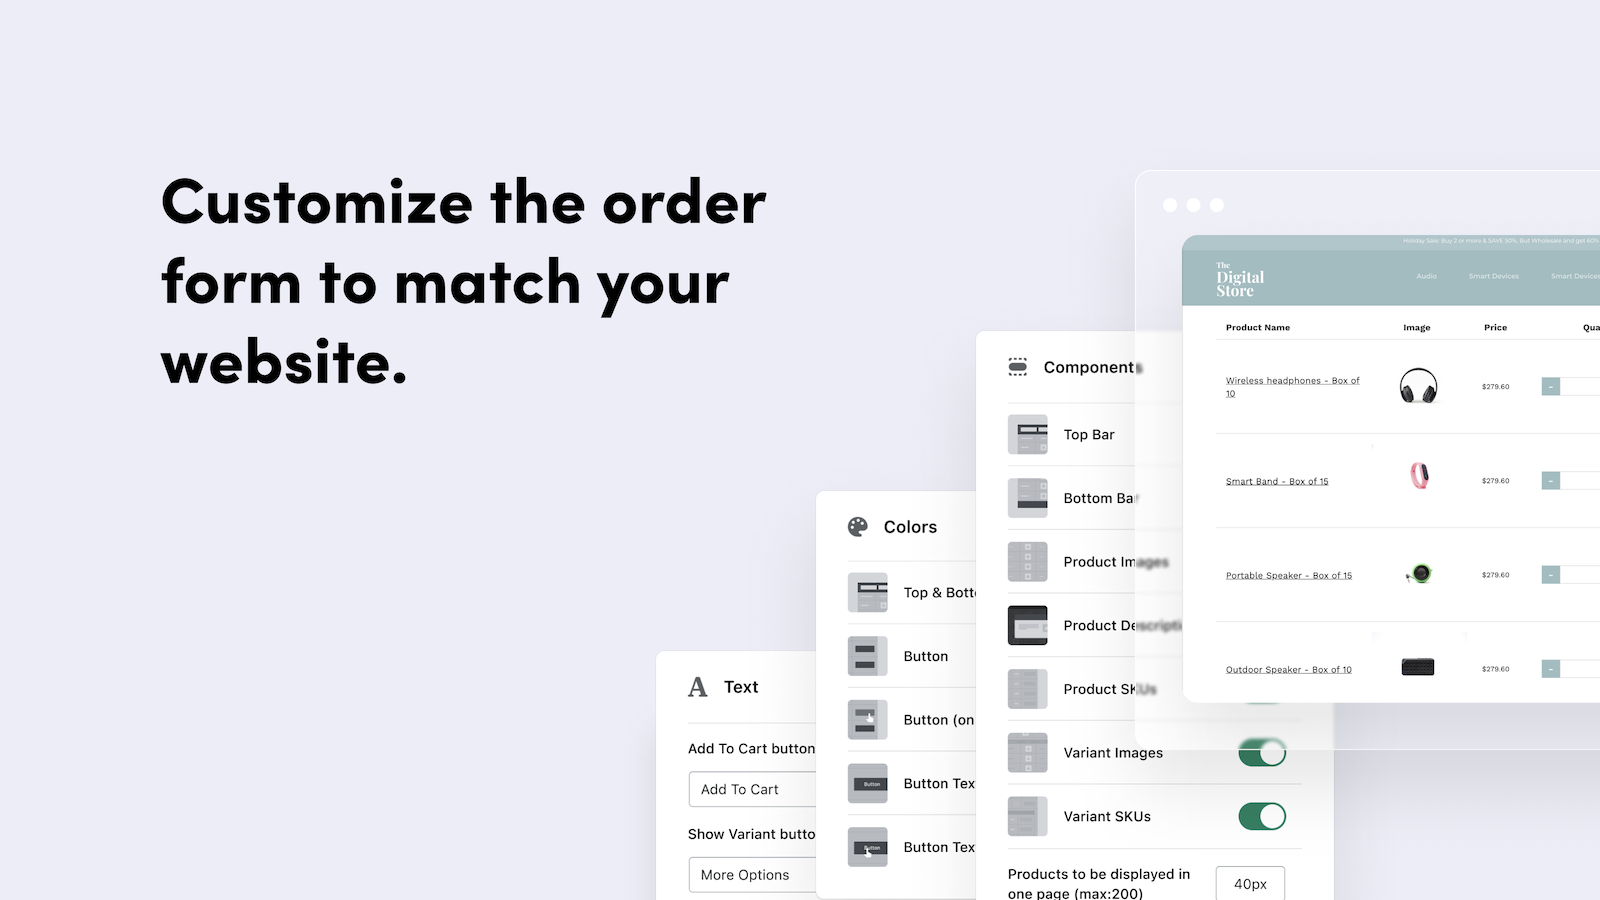 Customize the order form to match your website.